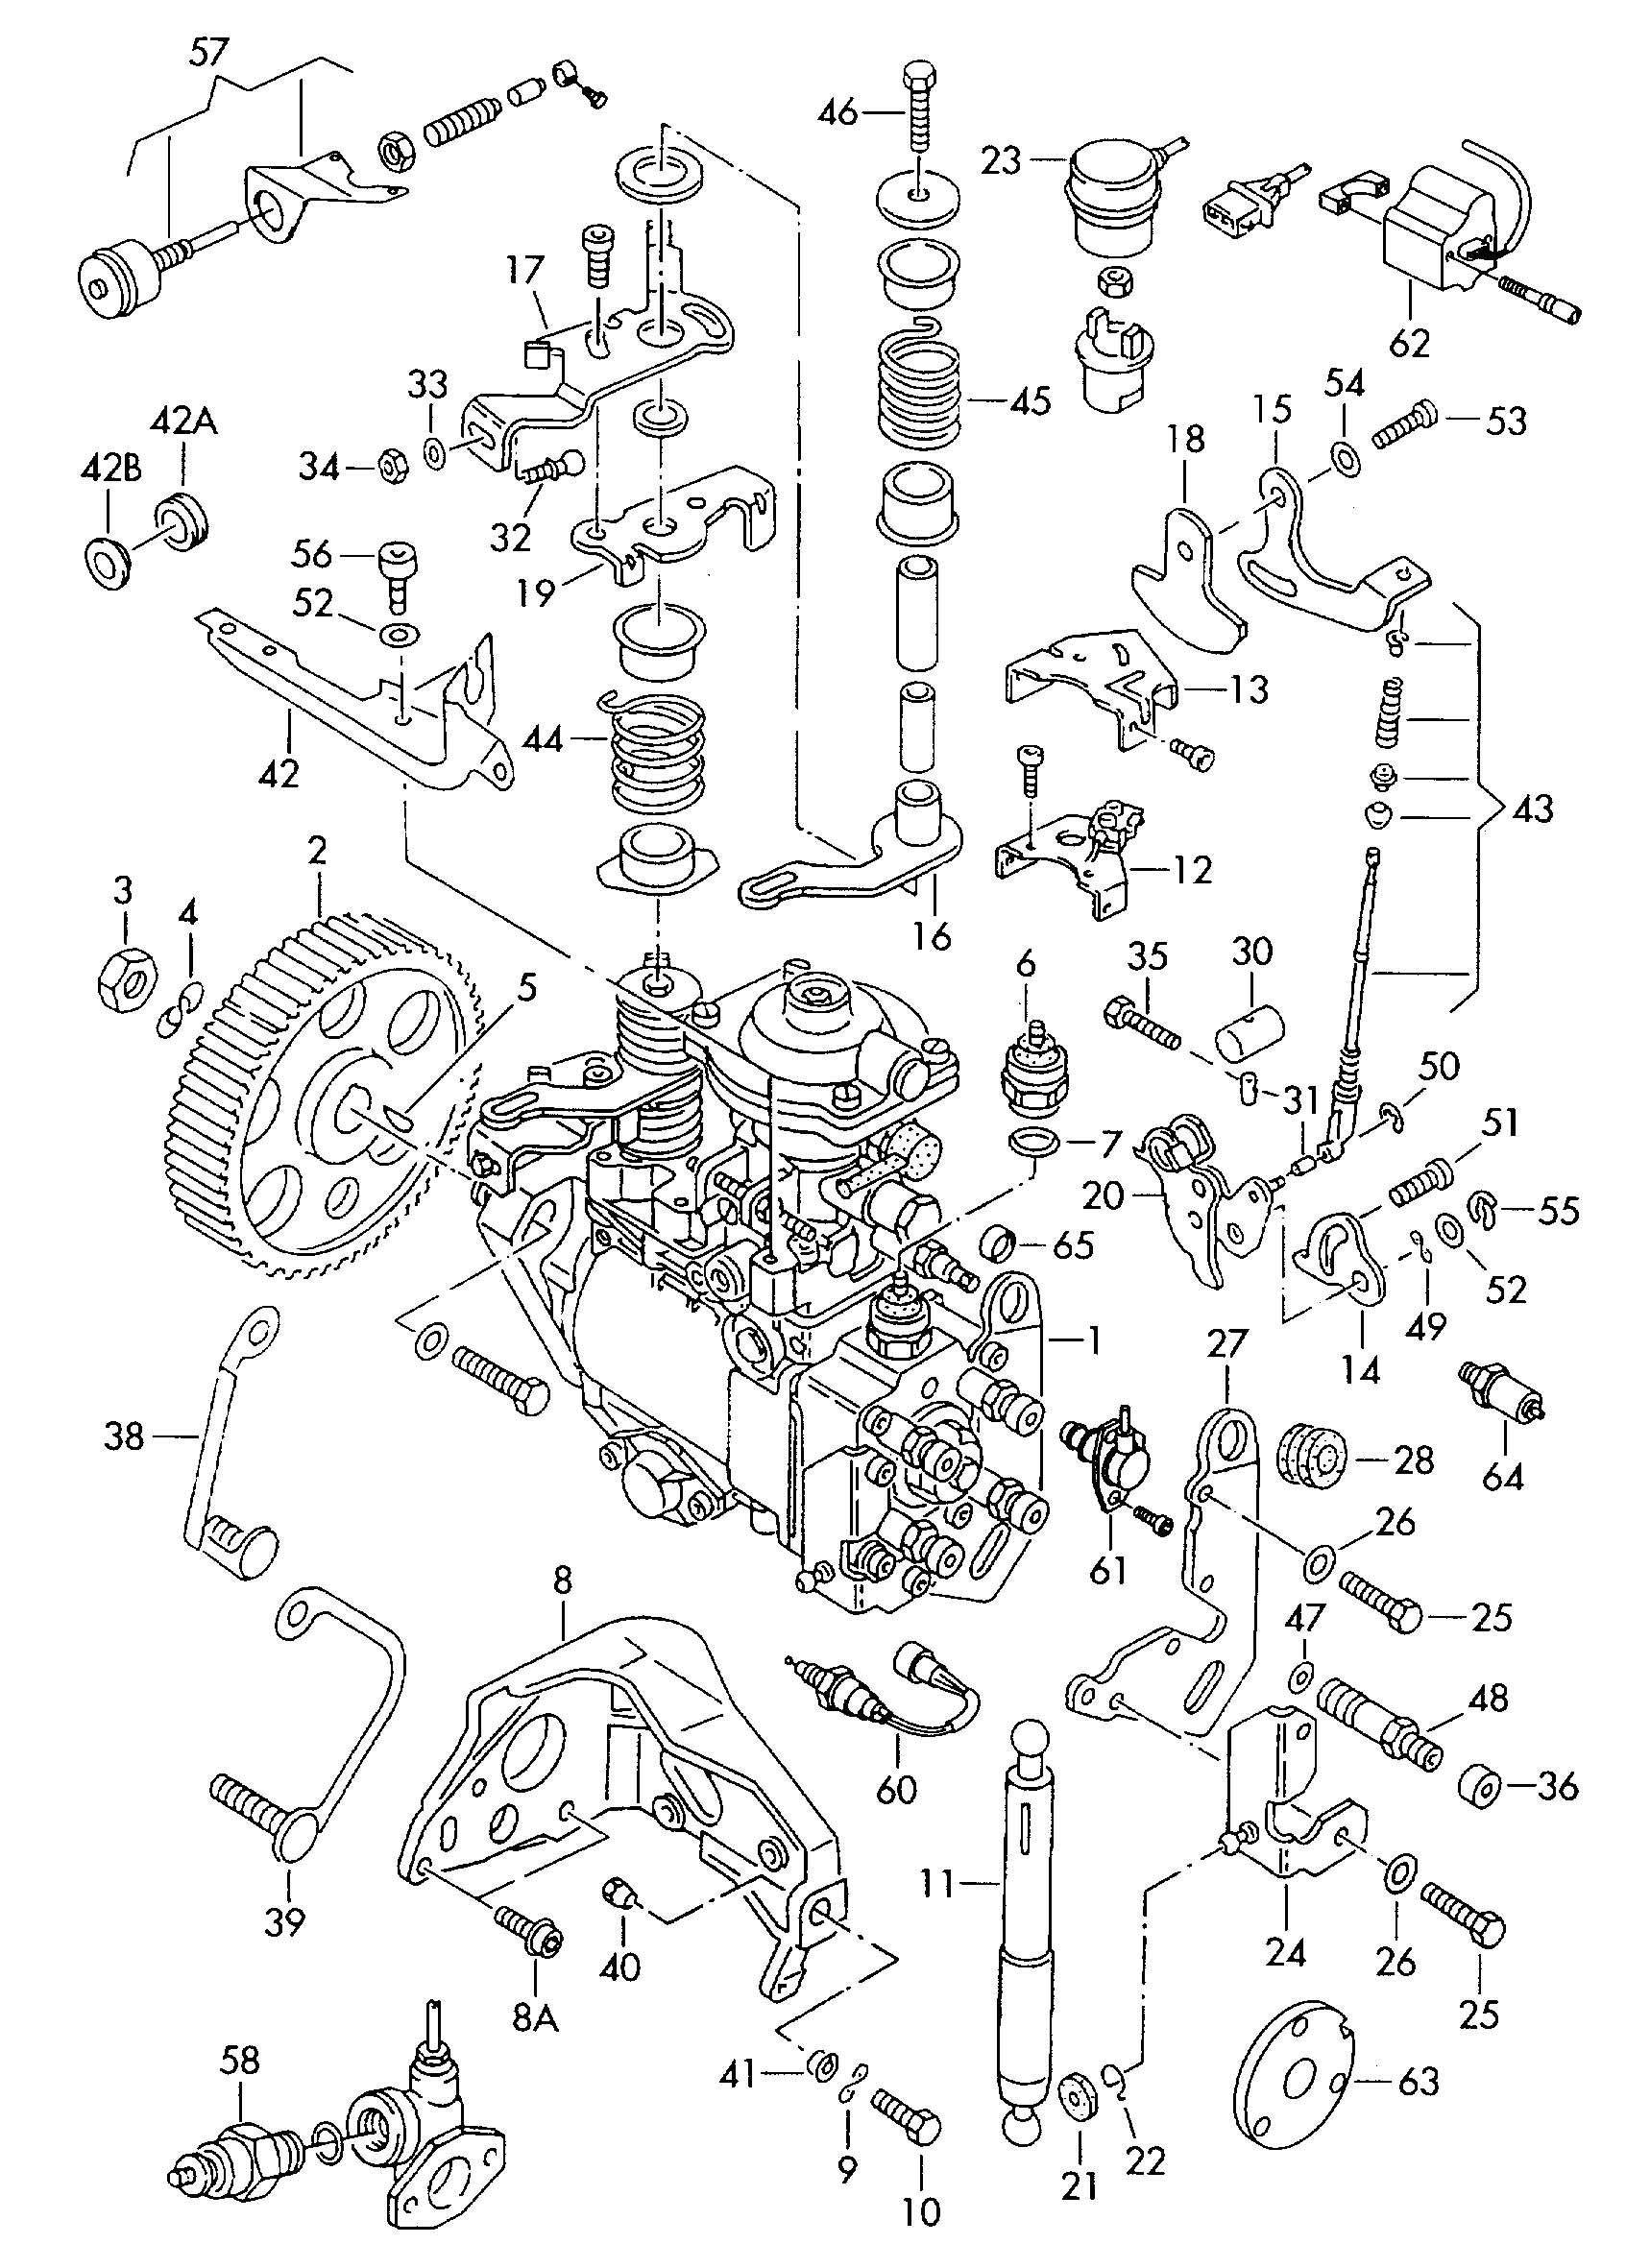 Lucas Cav Injector Pump Diagram furthermore Gm 3 9l V6 Engine further Rv 30 Sub Panel Wiring Diagram likewise Honda Grom Msx 125 Service Manual Pdf also 2296521 Ml270 Cutting Thread Lp Hp Pump. on fuel injector wiring diagram